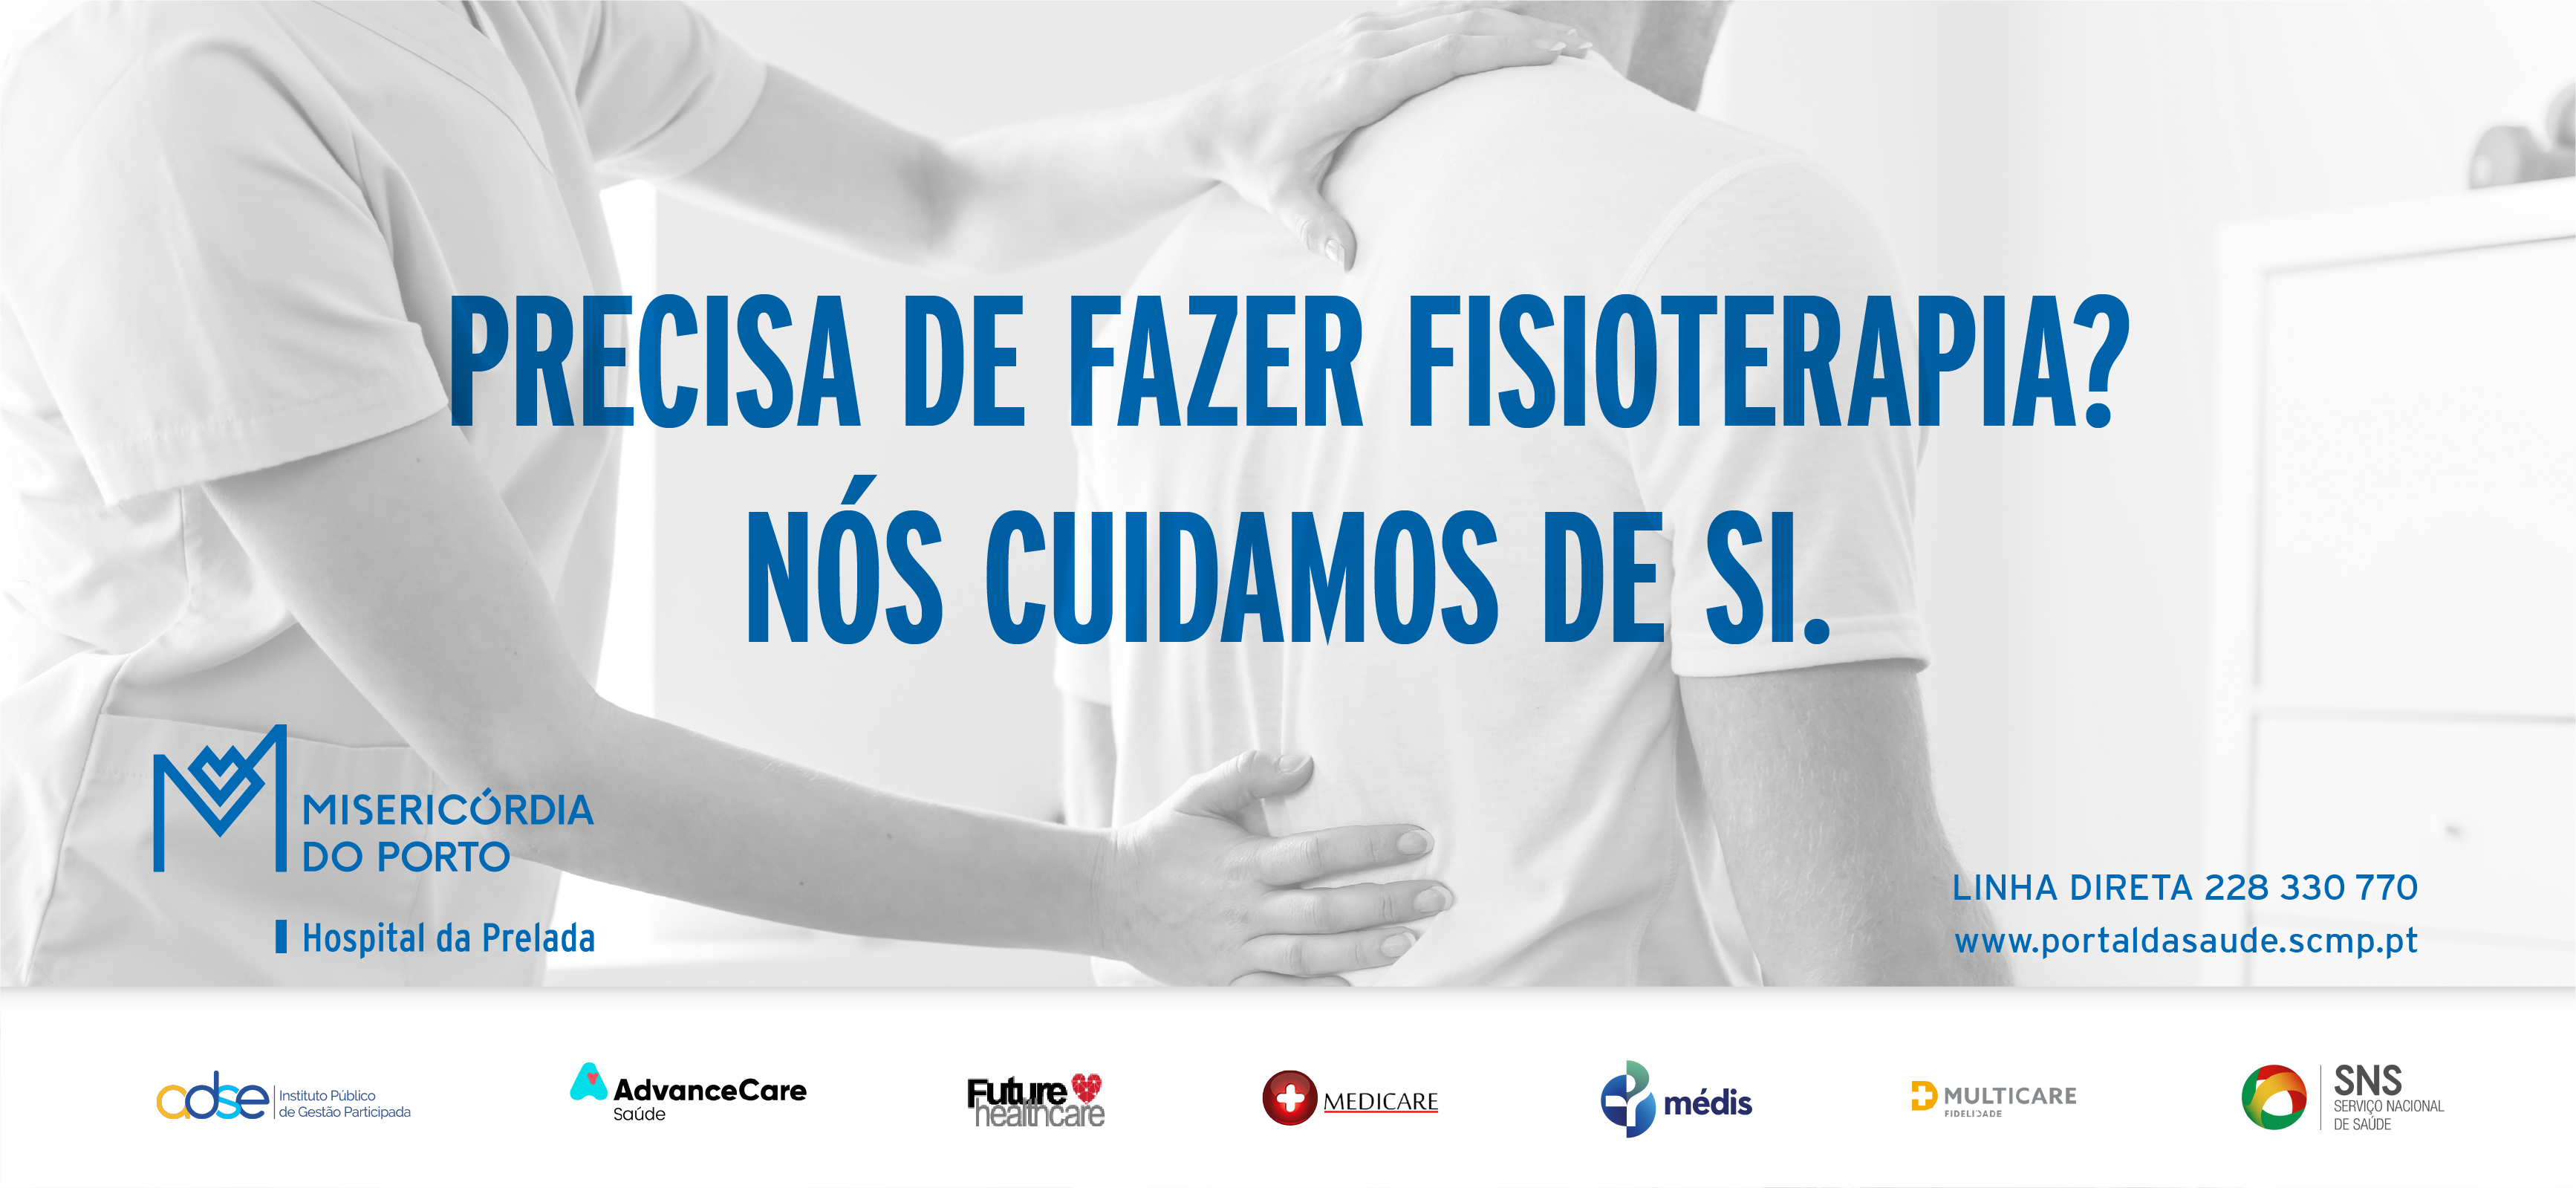 https://portaldasaude.scmp.pt/assets/misc/img/especialidades/MFR/Fisioterapia/HP%20dia%20mundial%20fisioterapia_banner%20site.png